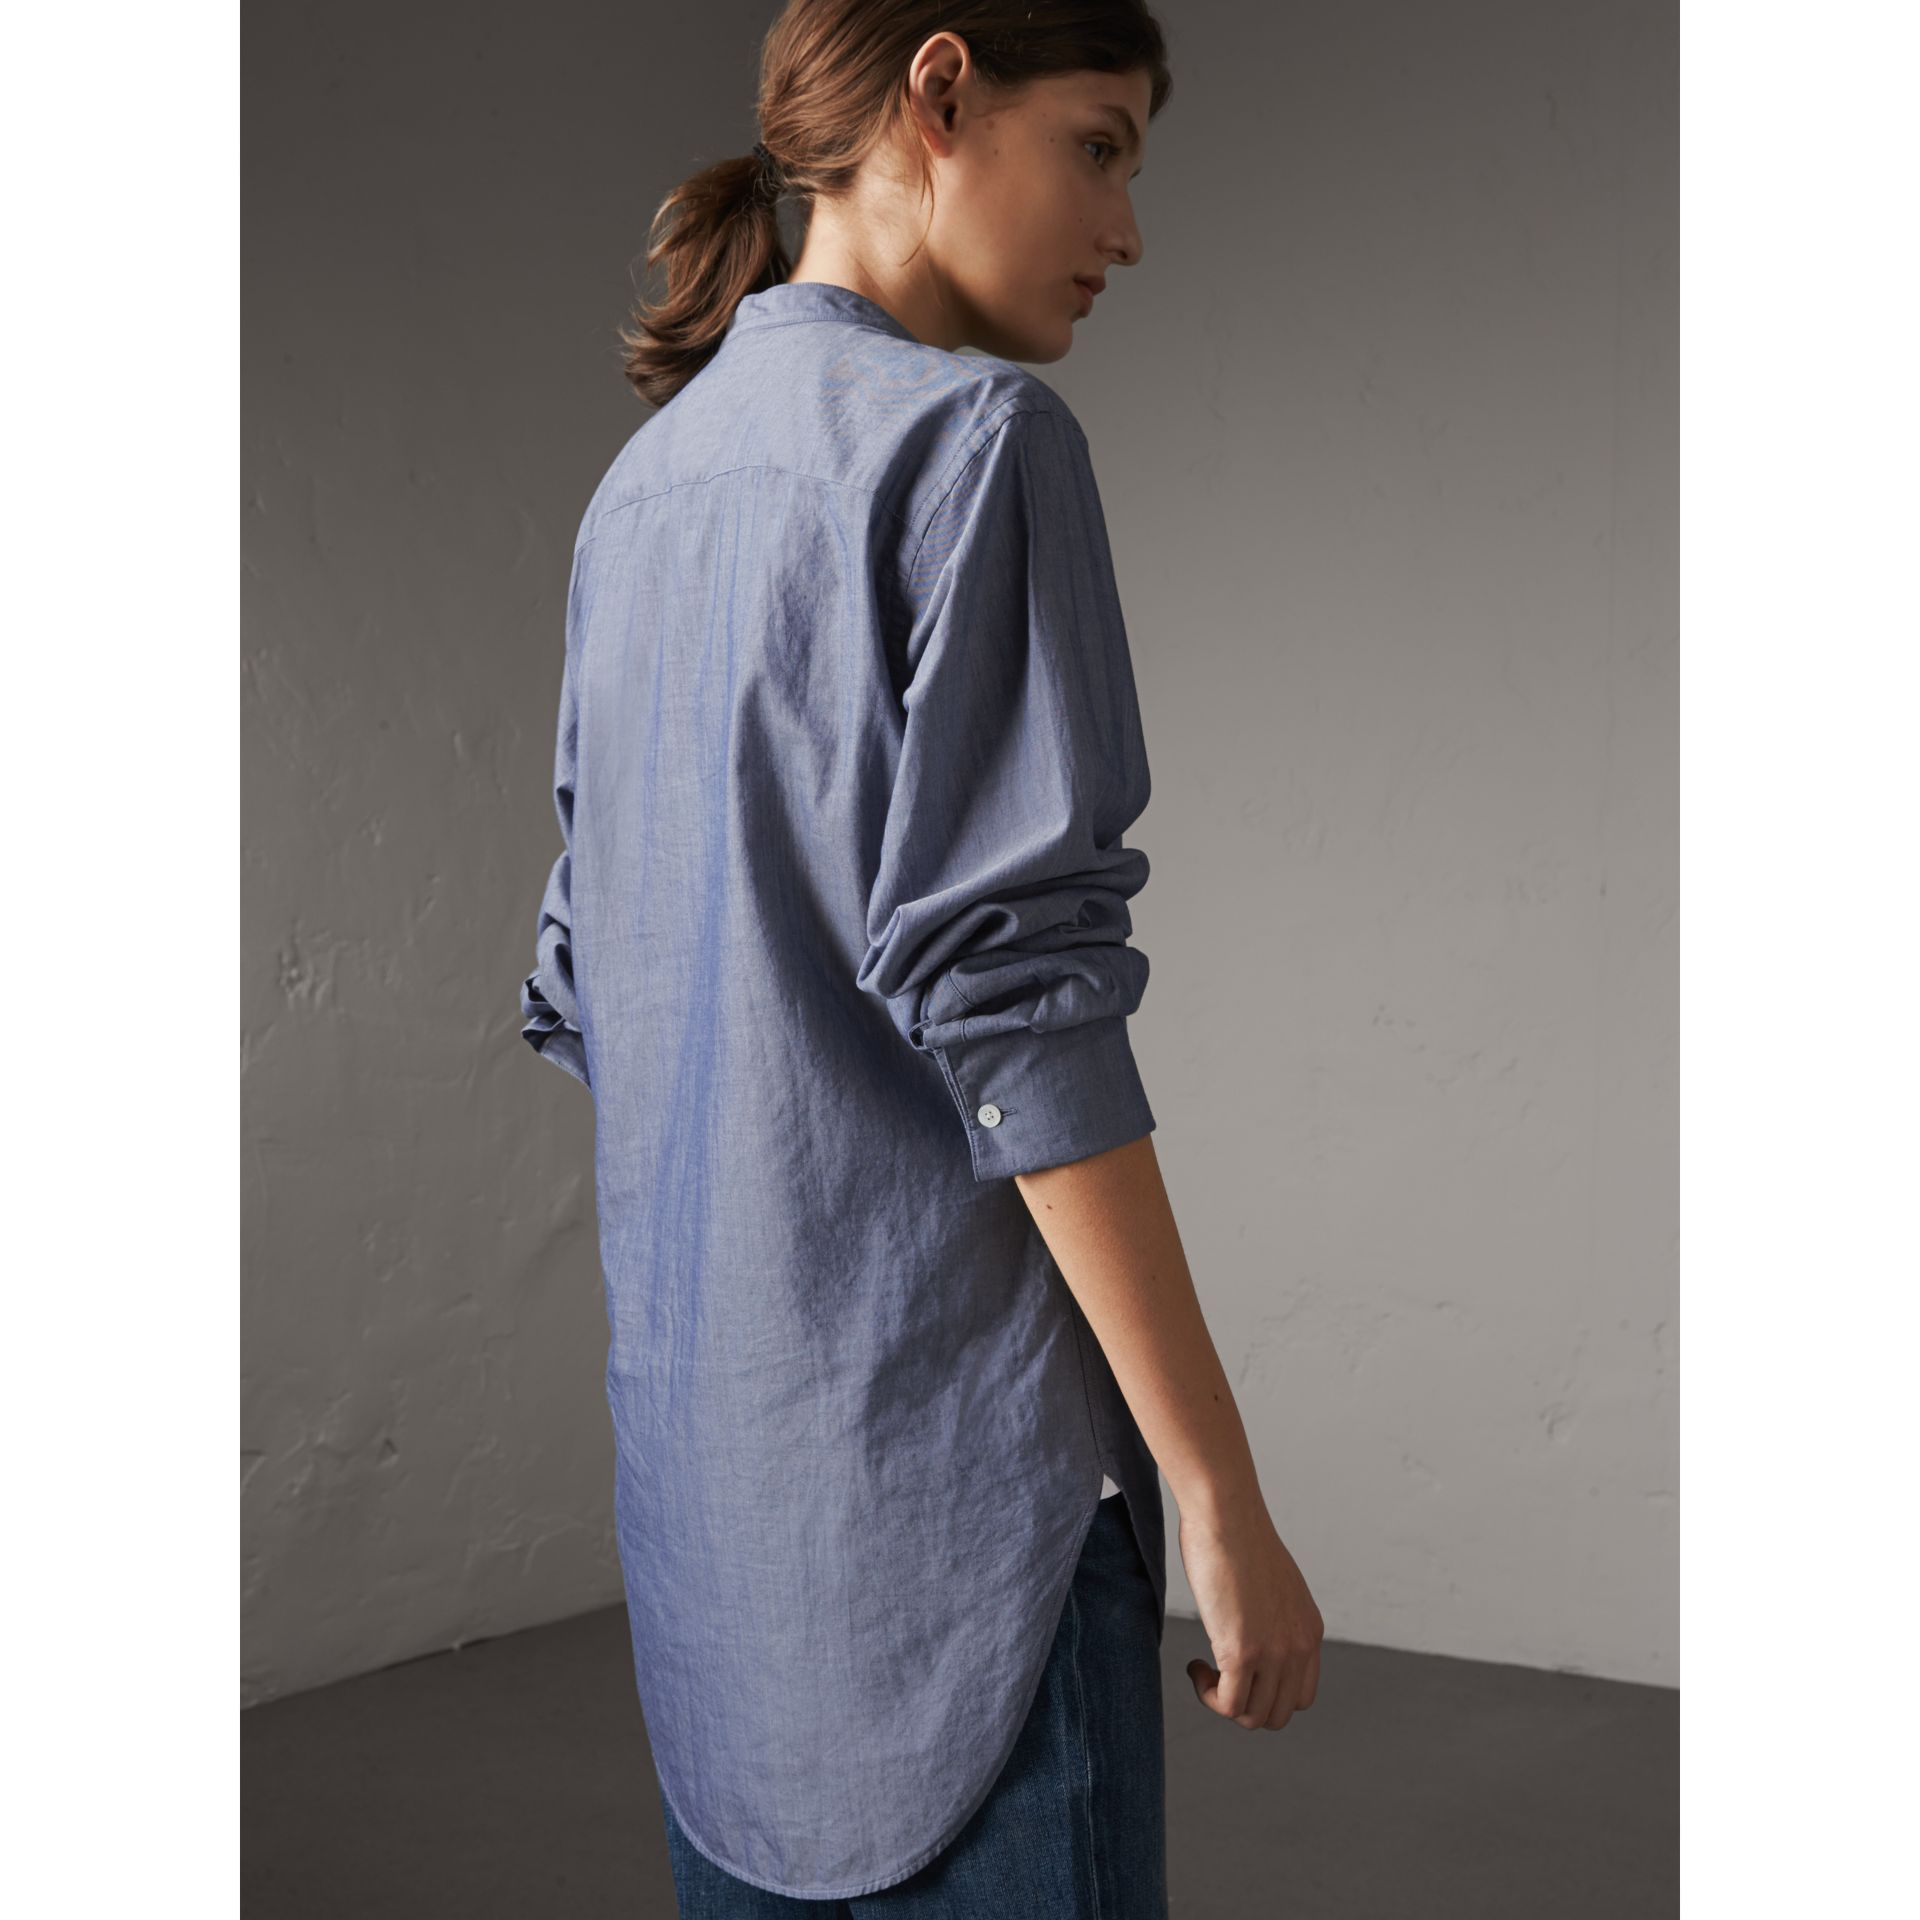 Unisex Grandad Collar Pleated Bib Cotton Shirt in Denim Blue - Women | Burberry - gallery image 5